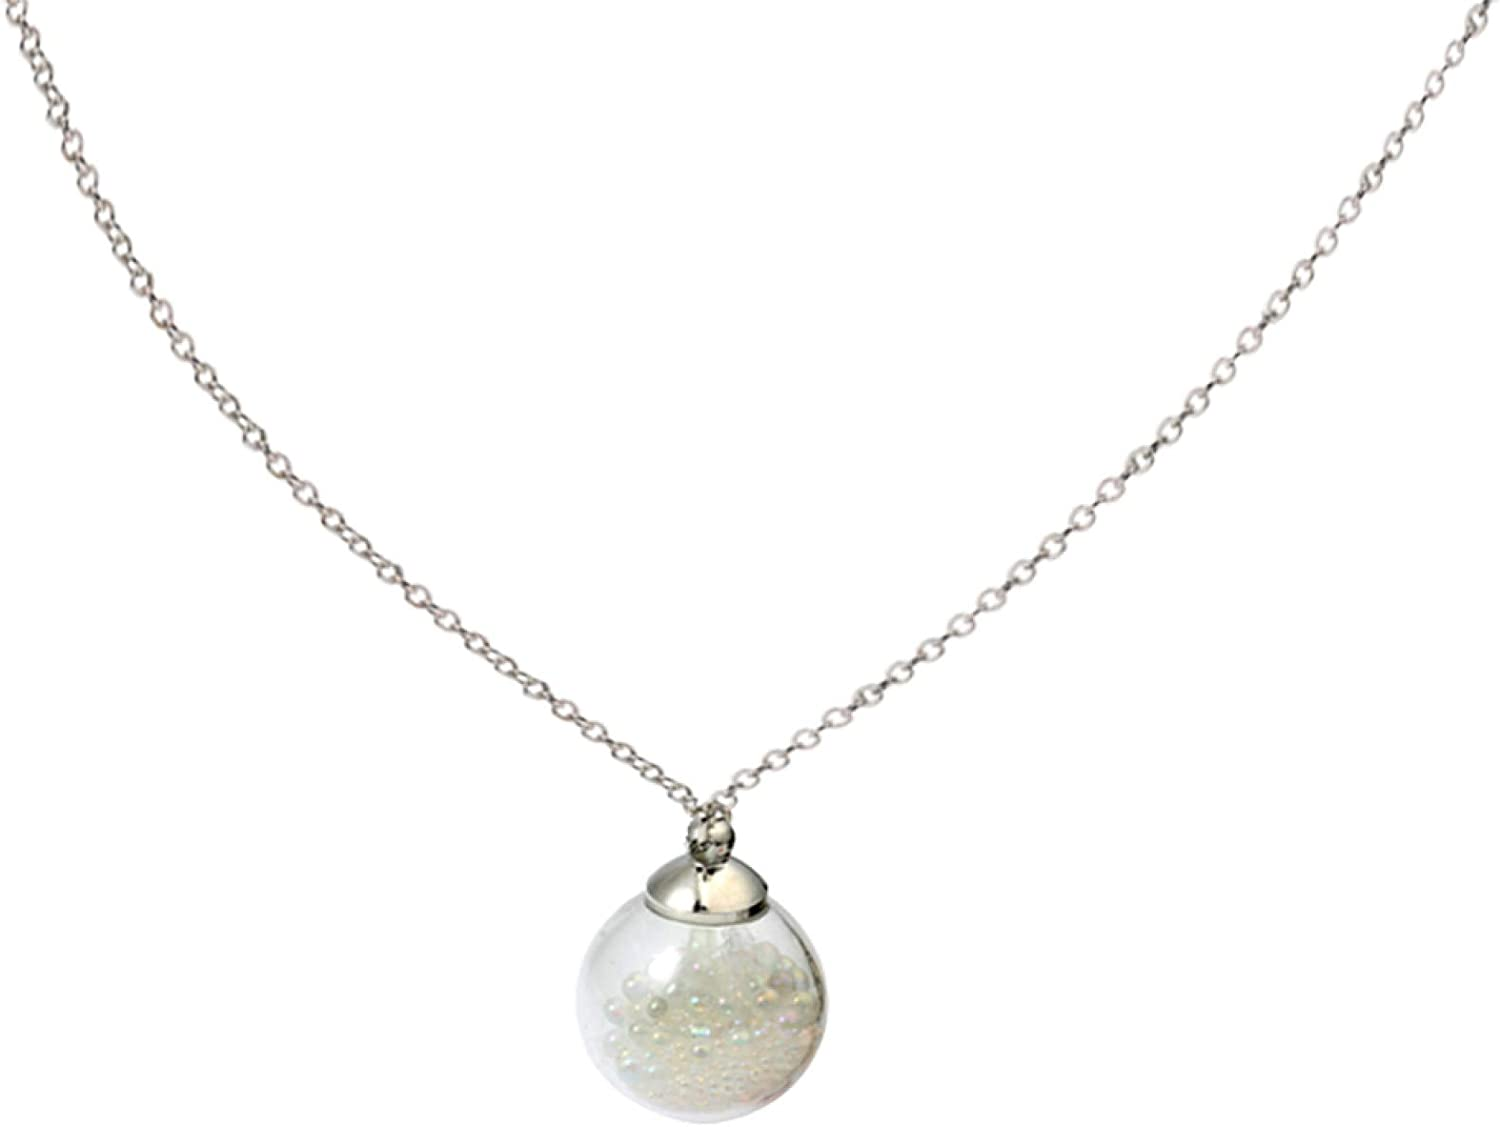 Stylish Round Glass Bubbles sale Pendant Jewelry Party Chain Direct stock discount Necklace